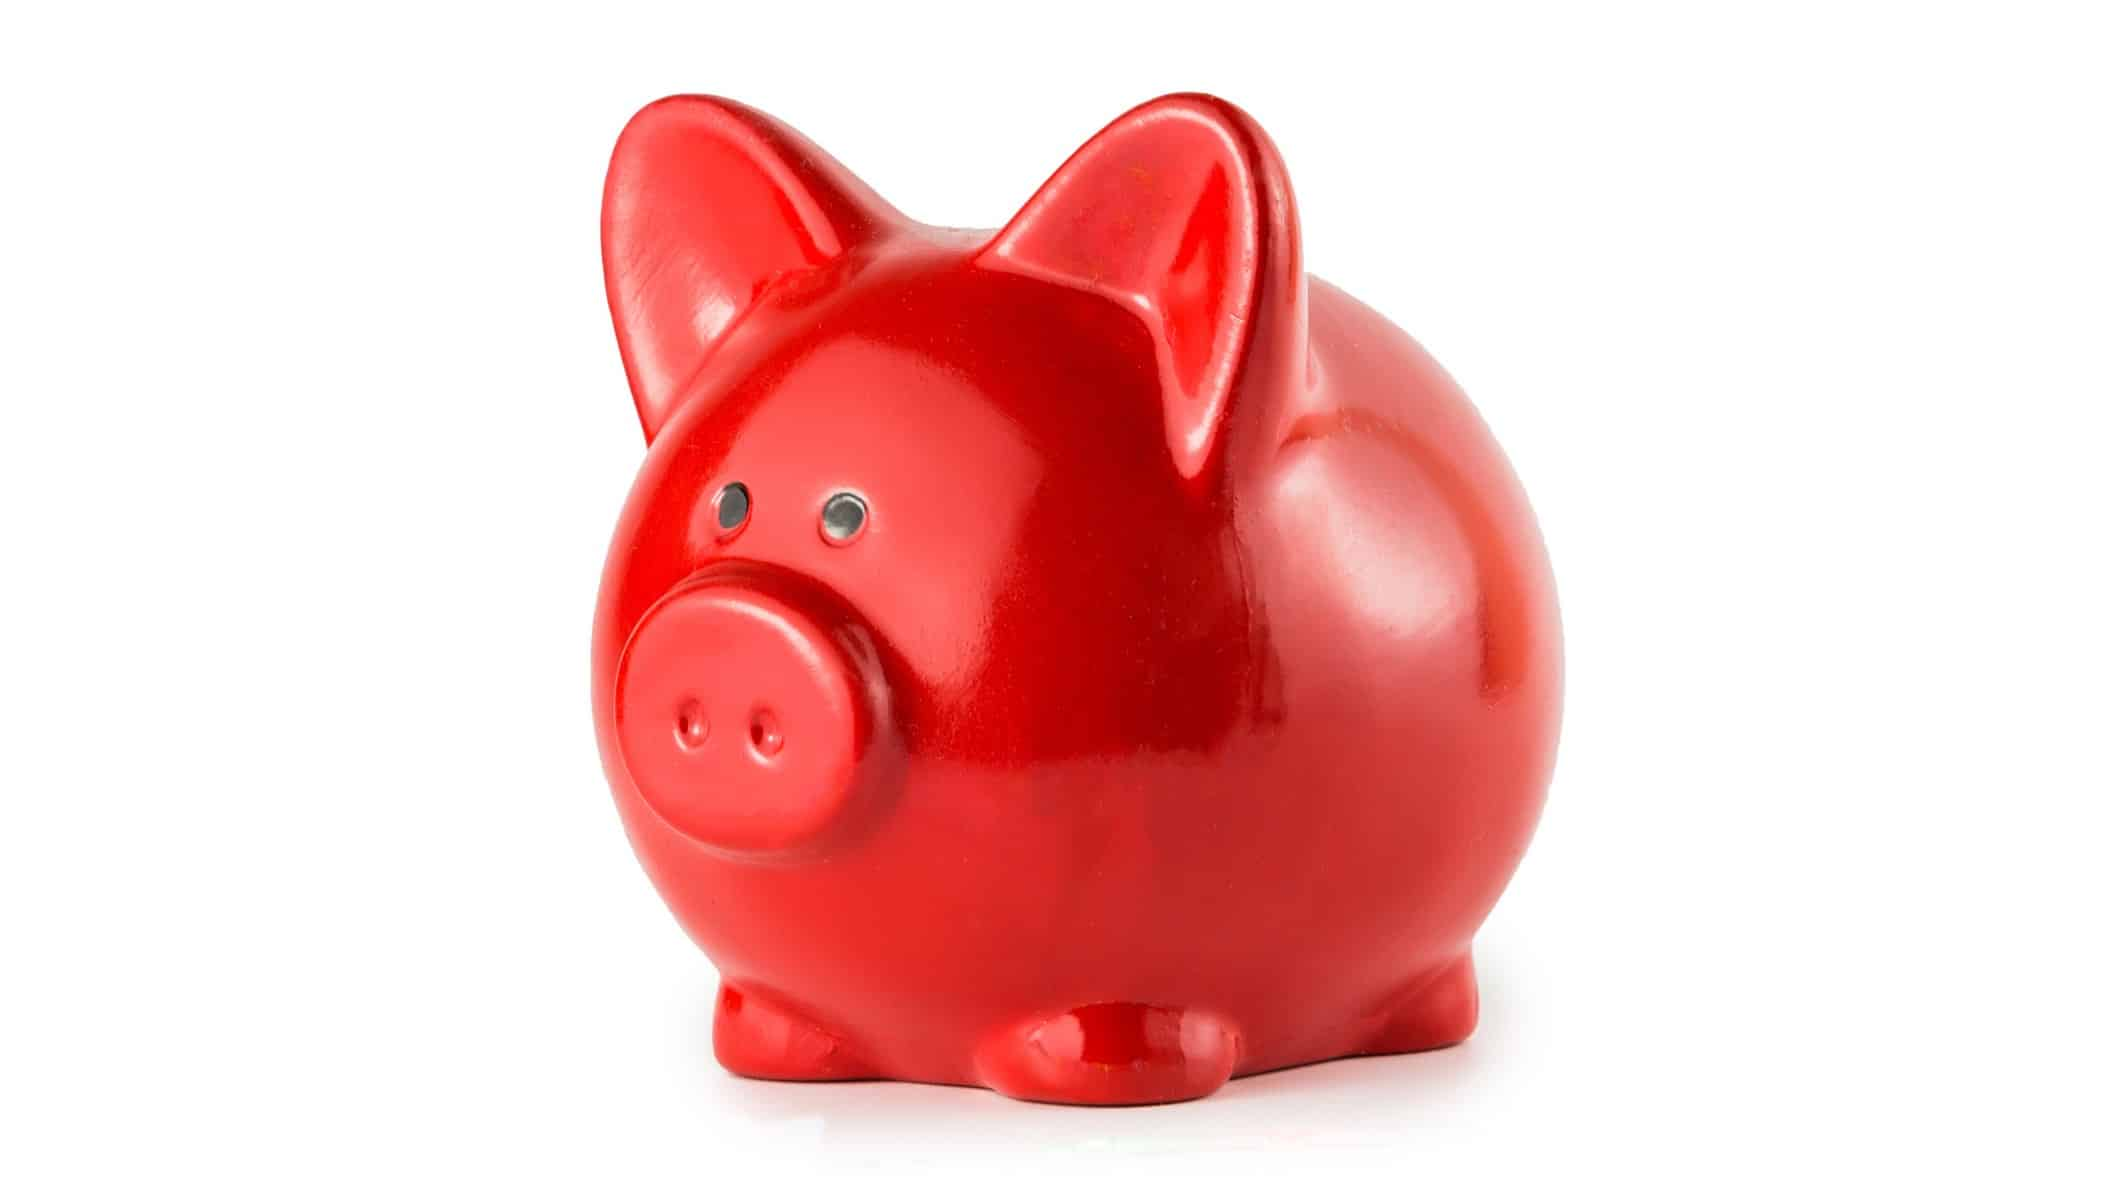 nab share price represented by red piggy bank